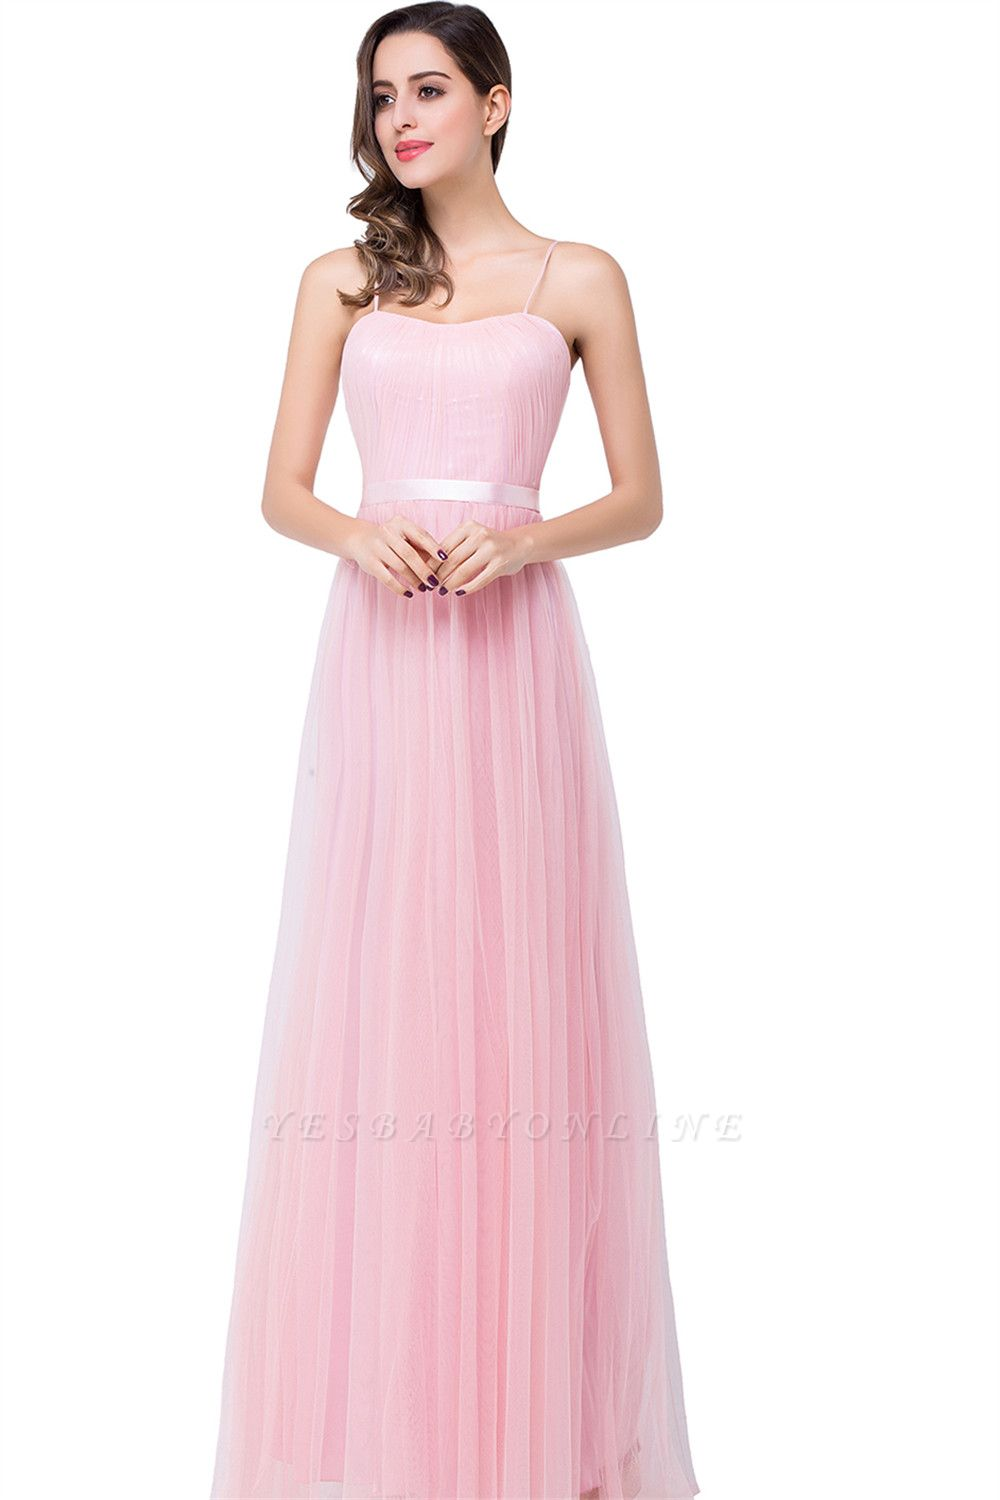 A-line Sweetheart Floor-length Pink Tulle Ruffles Cheap Bridesmaid Dresses